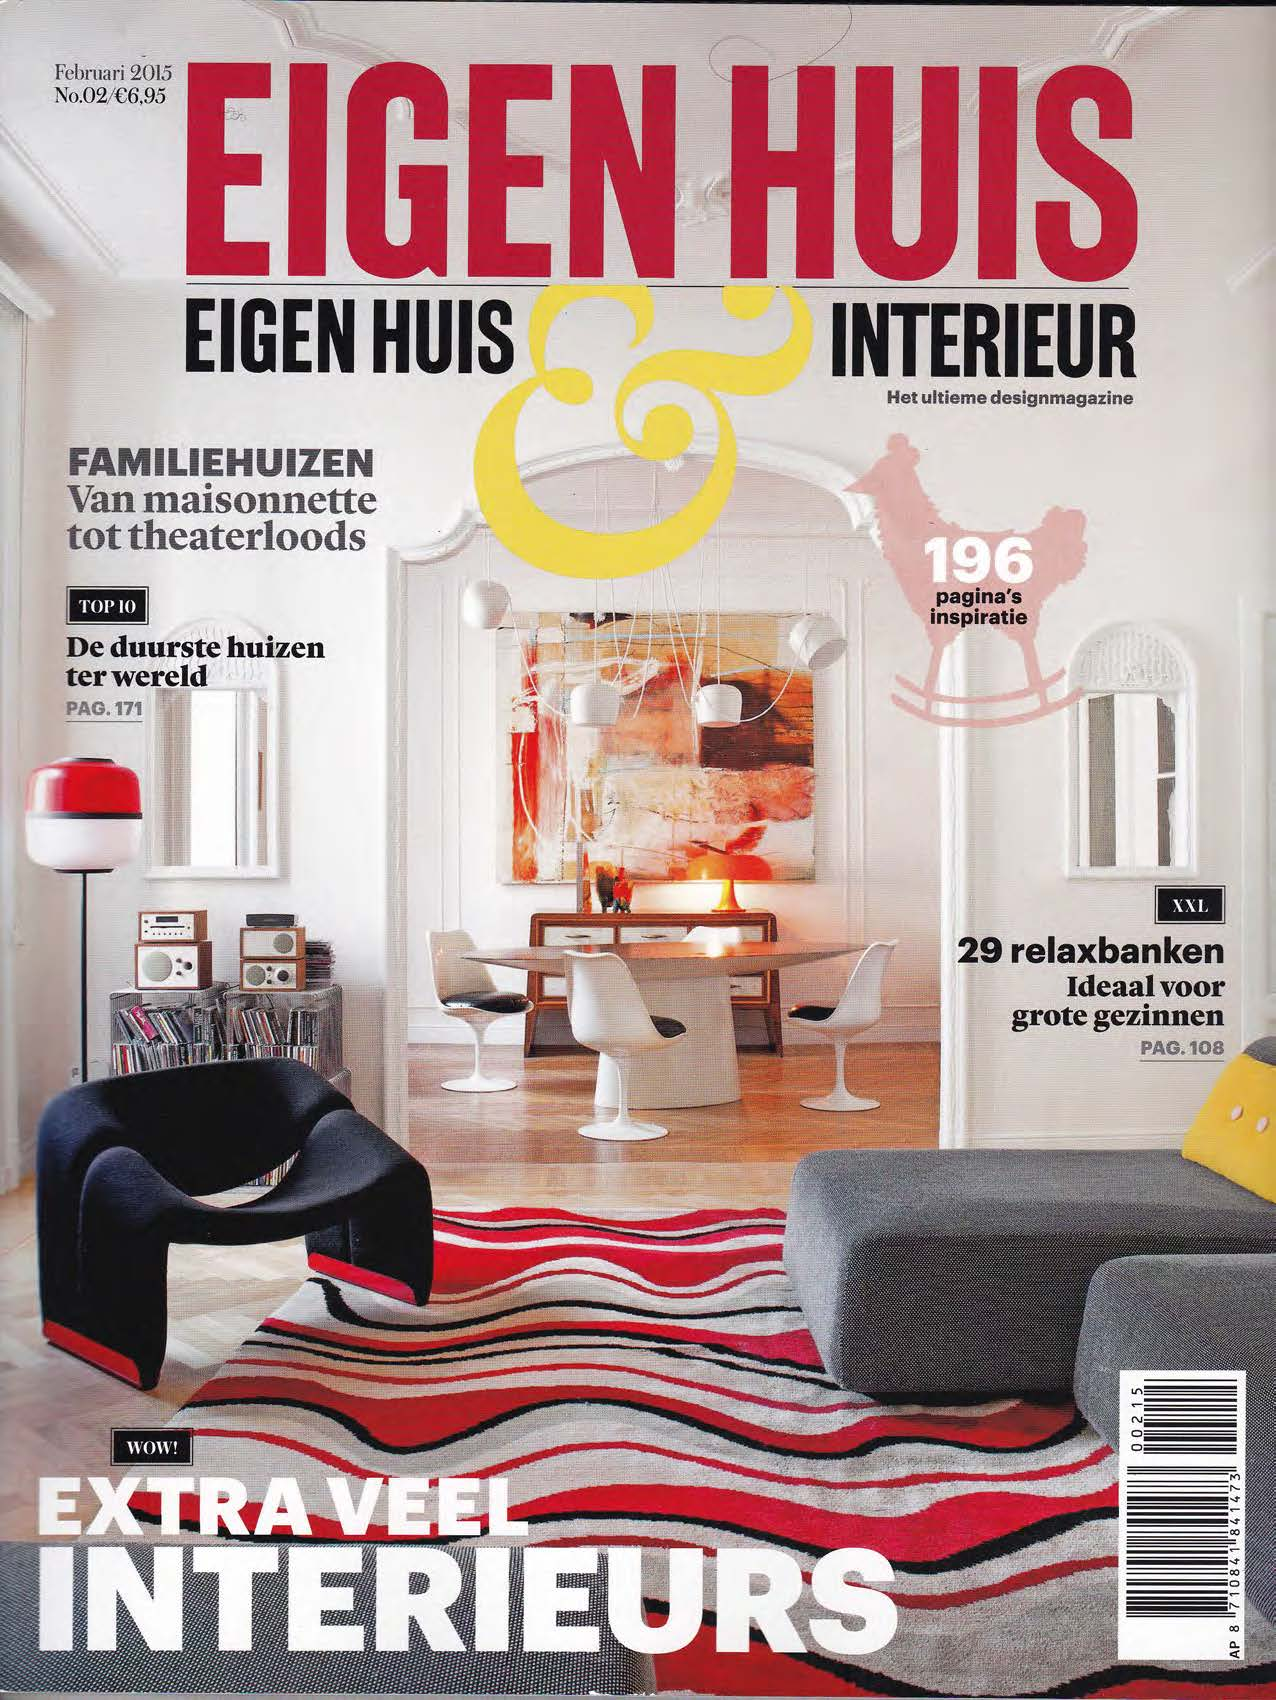 Suite wood eigen huis interieur feb 2015 for Eigenhuis en interieur